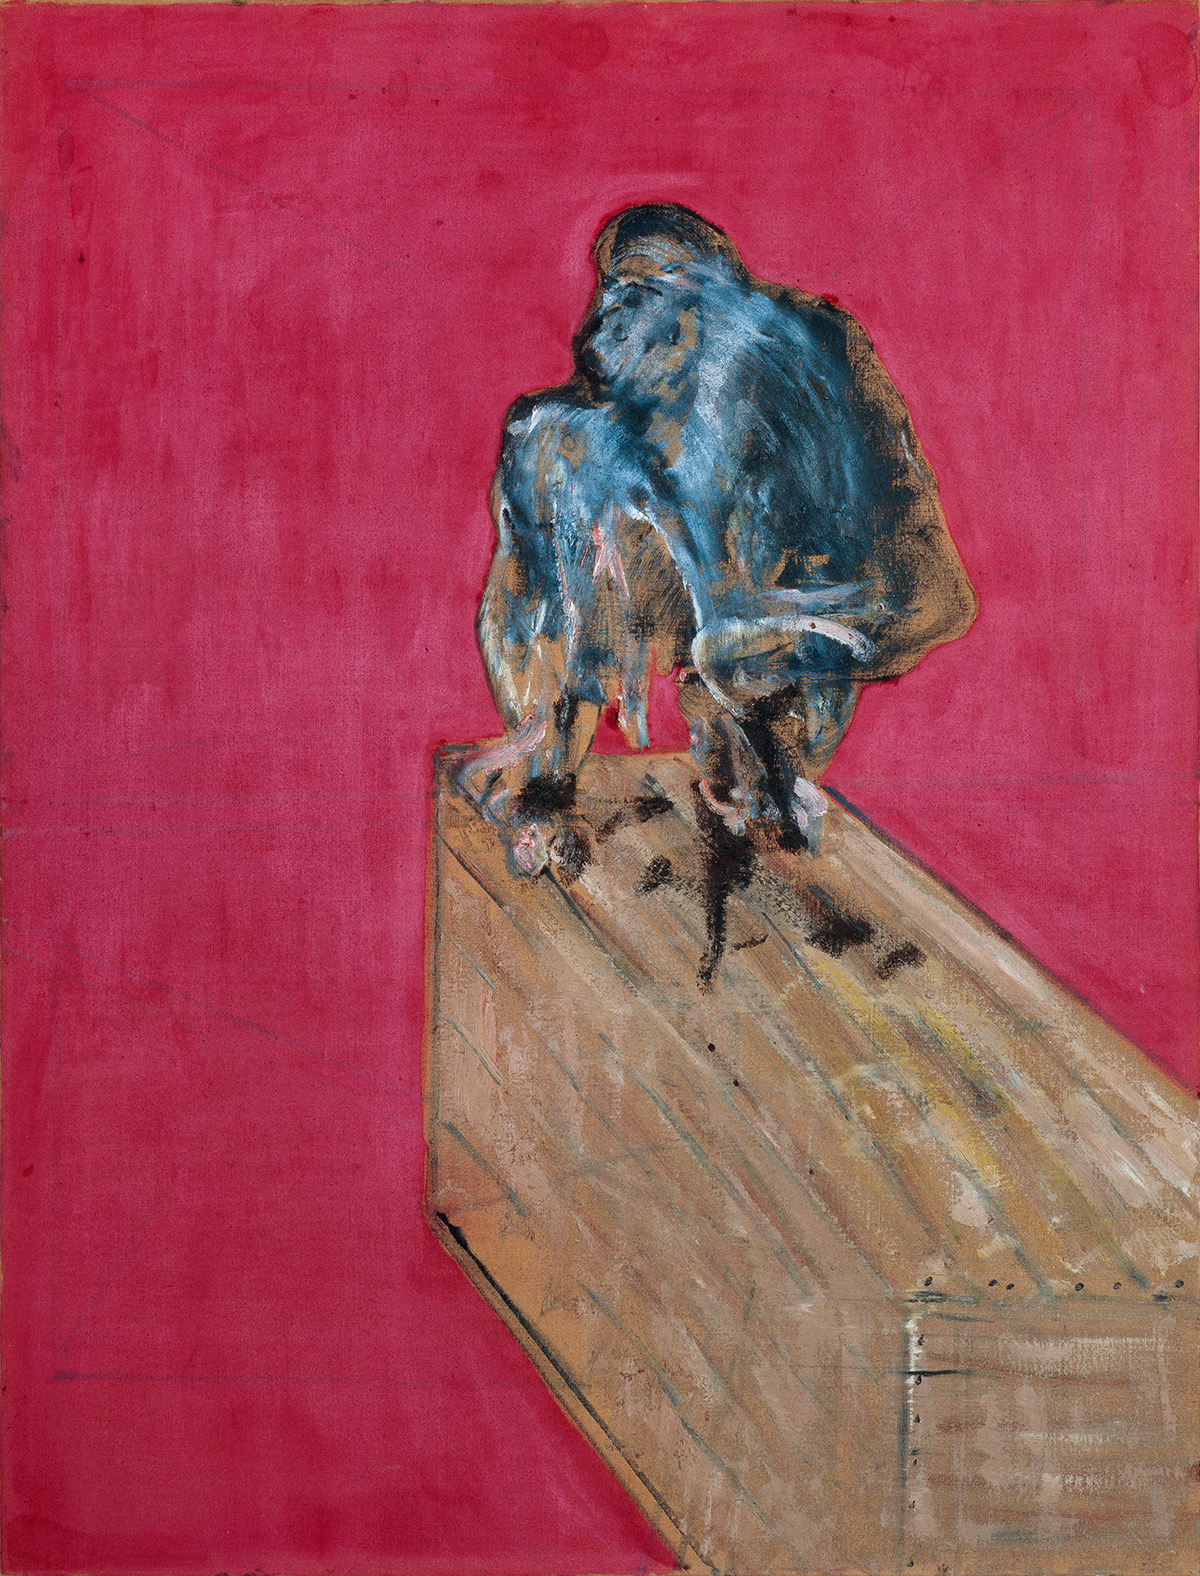 Francis Bacon, Study for Chimpanzee, 1957. Oil on canvas. CR number 57-09. © The Estate of Francis Bacon / DACS London 2019. All rights reserved.